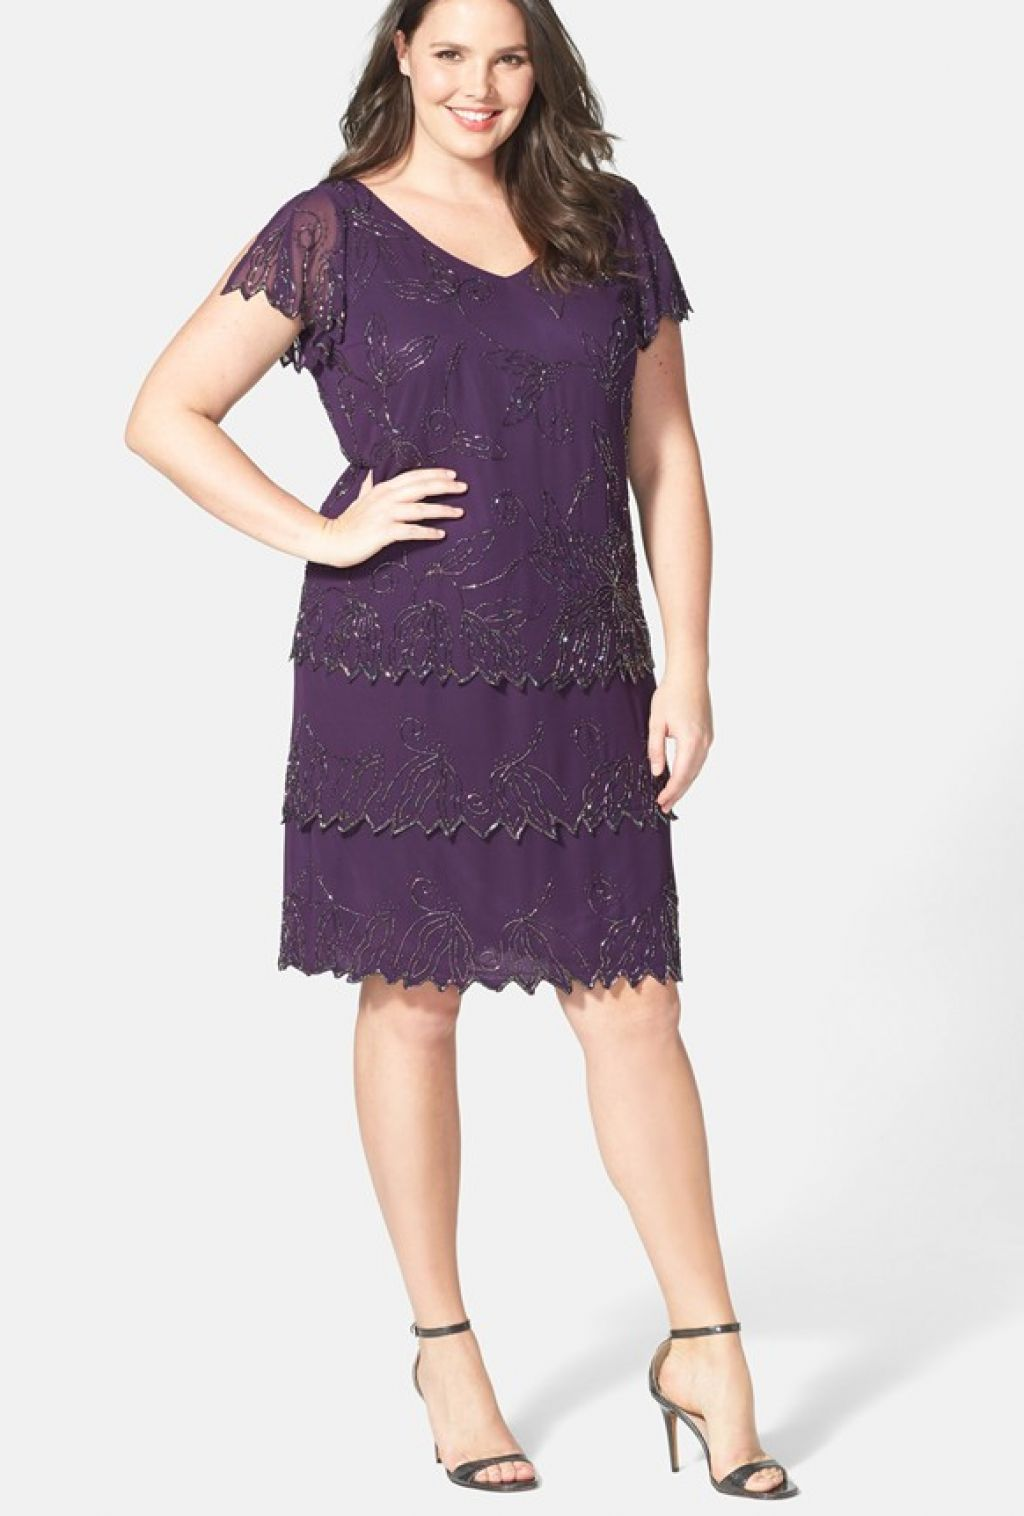 NORDSTROM STYLES FOR 2014 | Plus Size Dresses for Wedding Guests ...